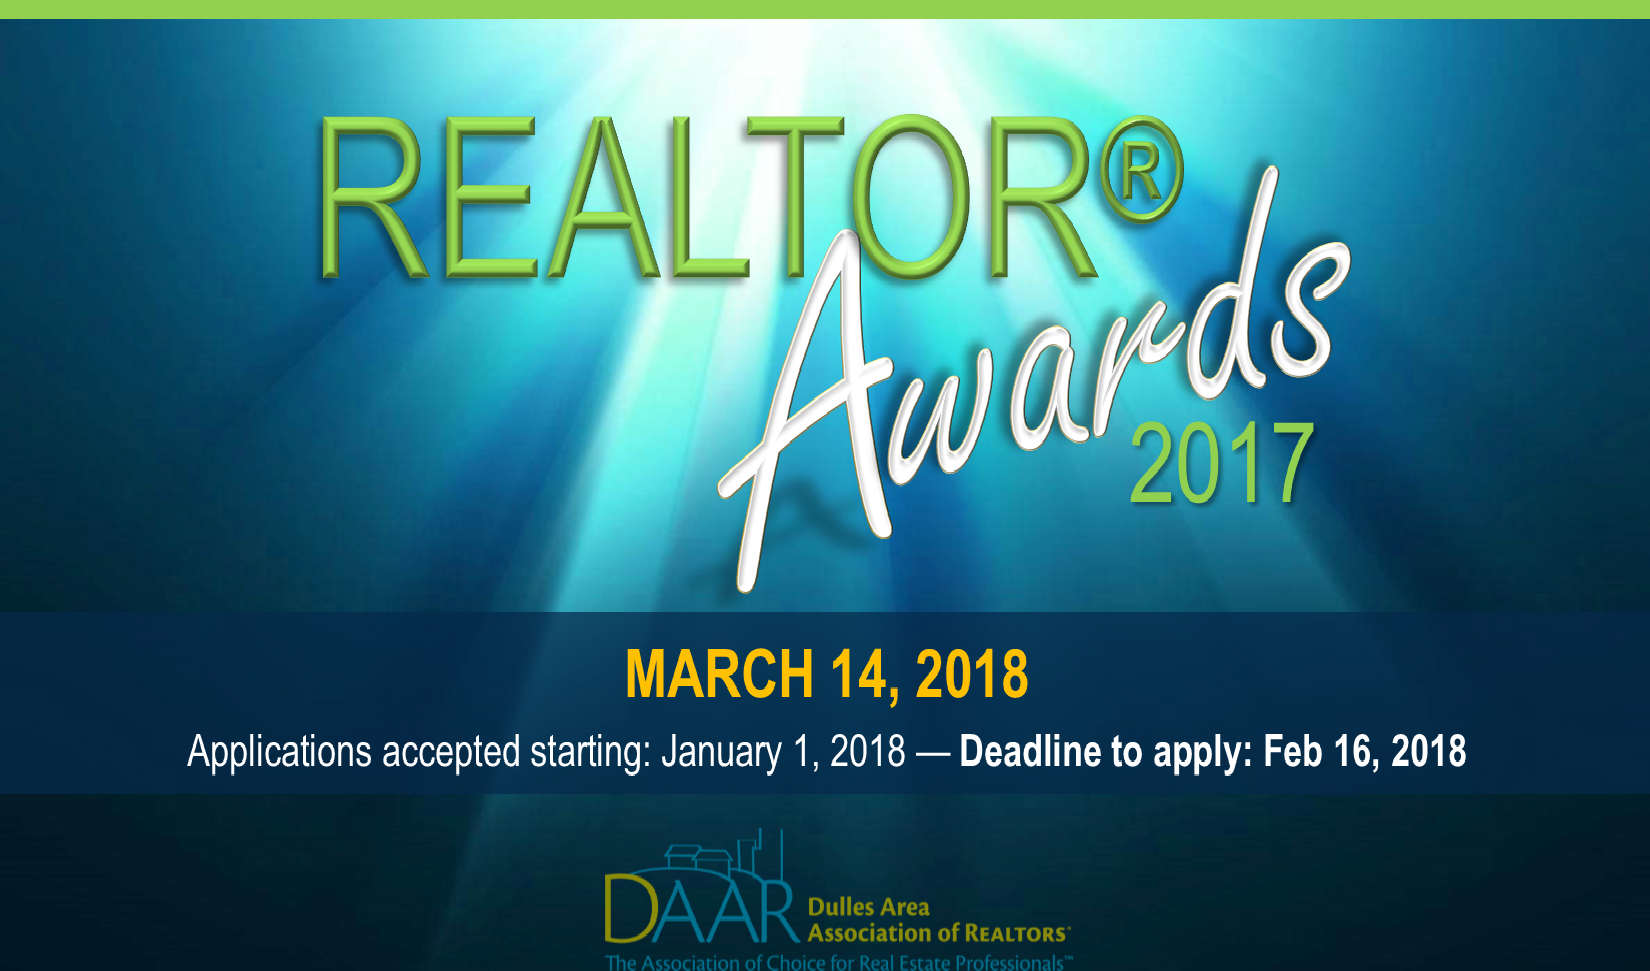 REALTOR® award ceremony, details below